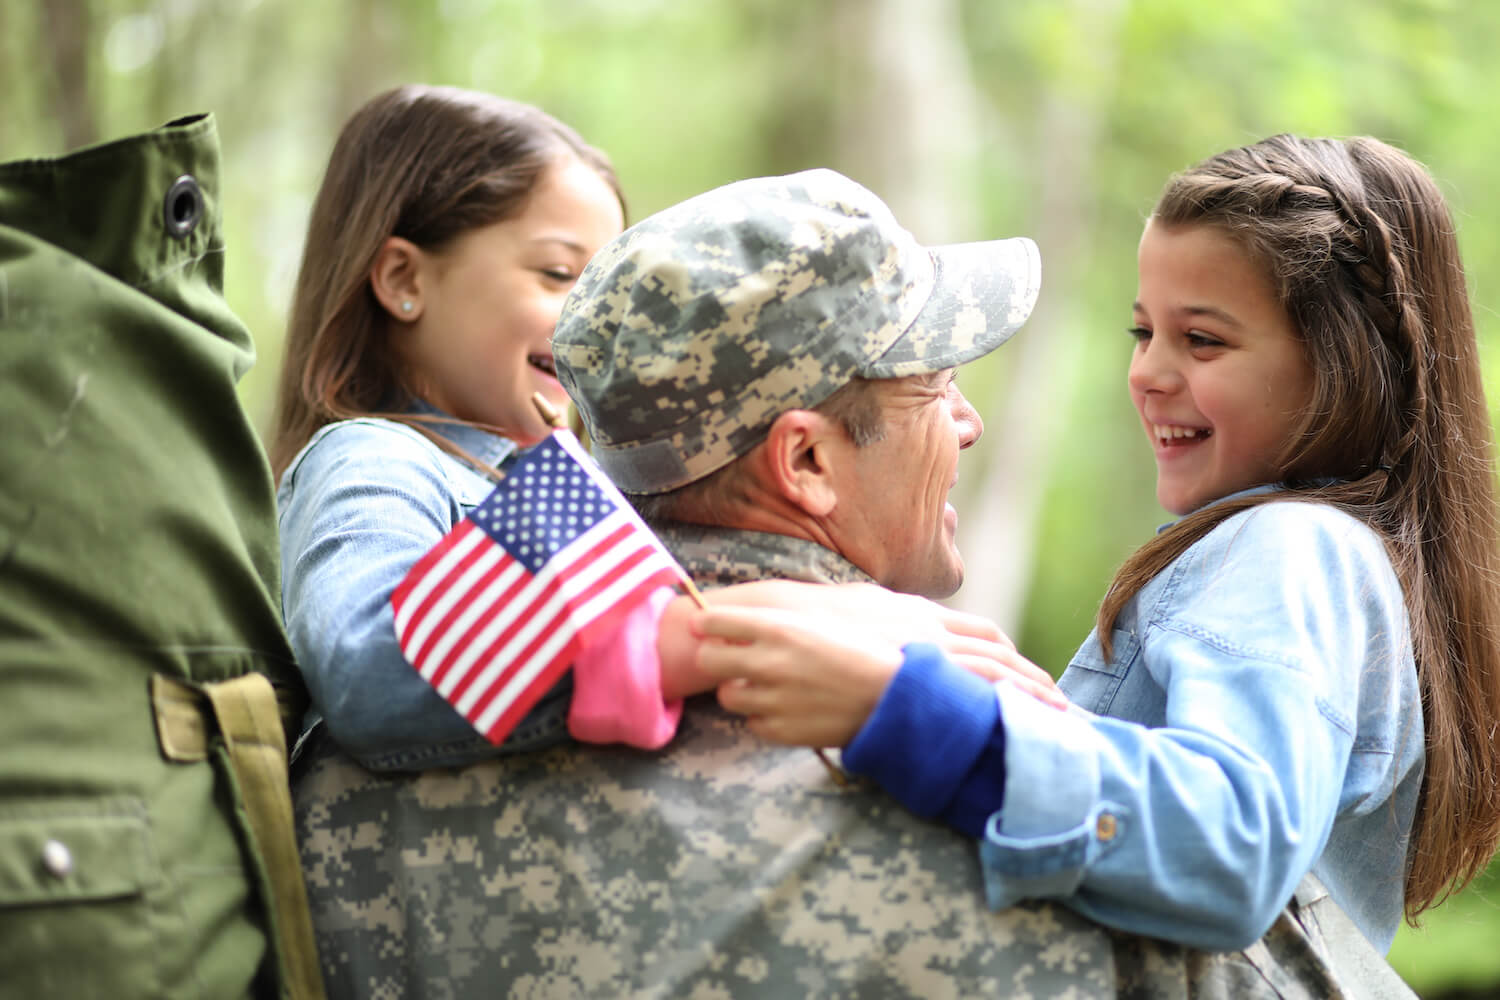 Family welcomes home a USA army soldier. The children excitedly hug father holding American flags.